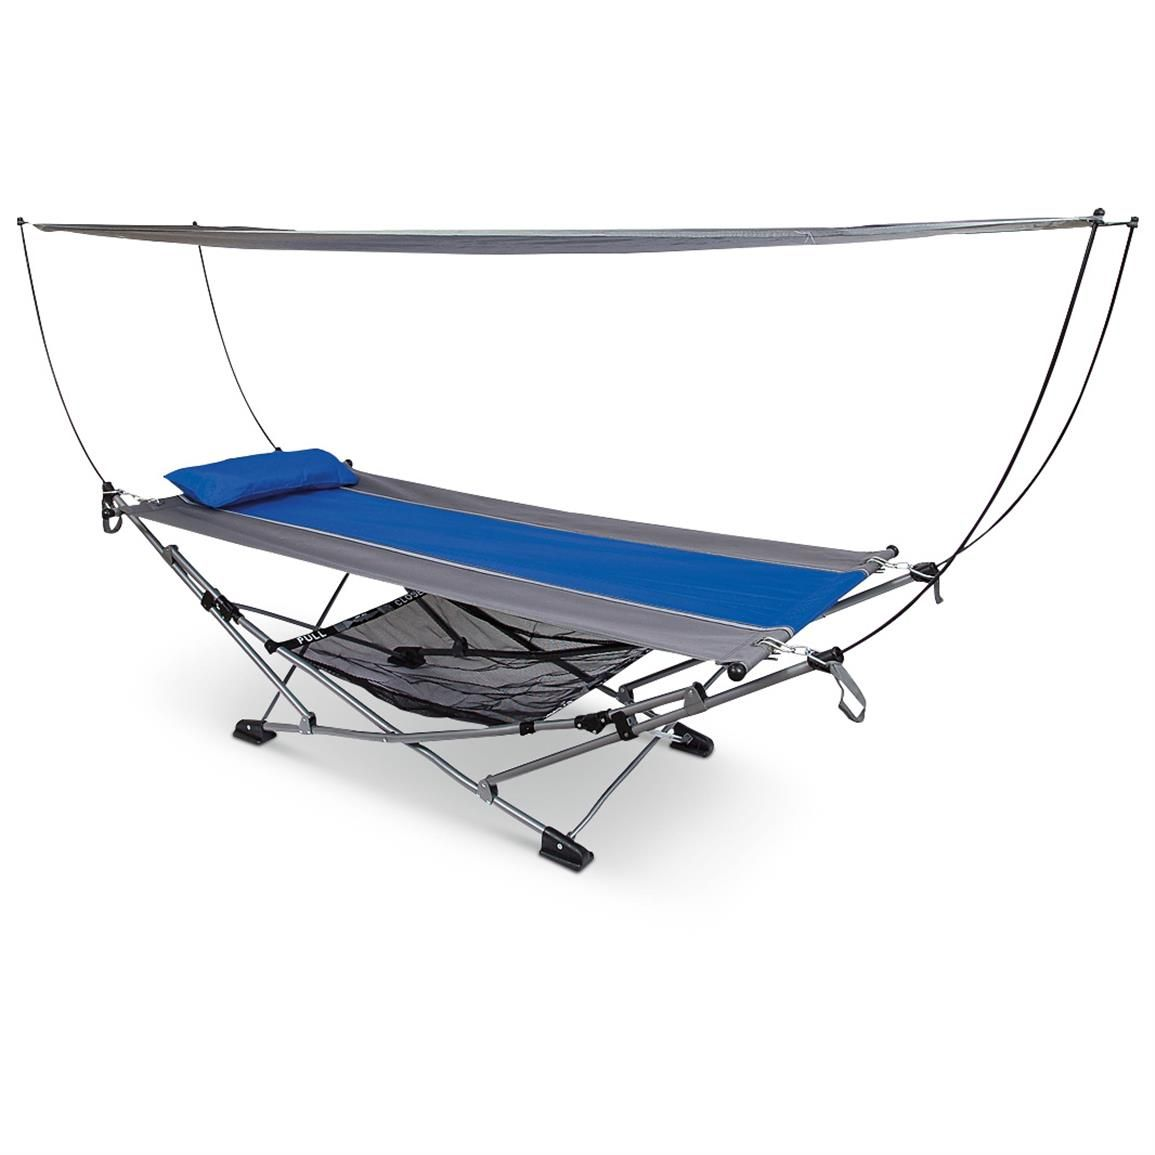 Mac Sports Portable Hammock With Canopy 99 99 Hammock